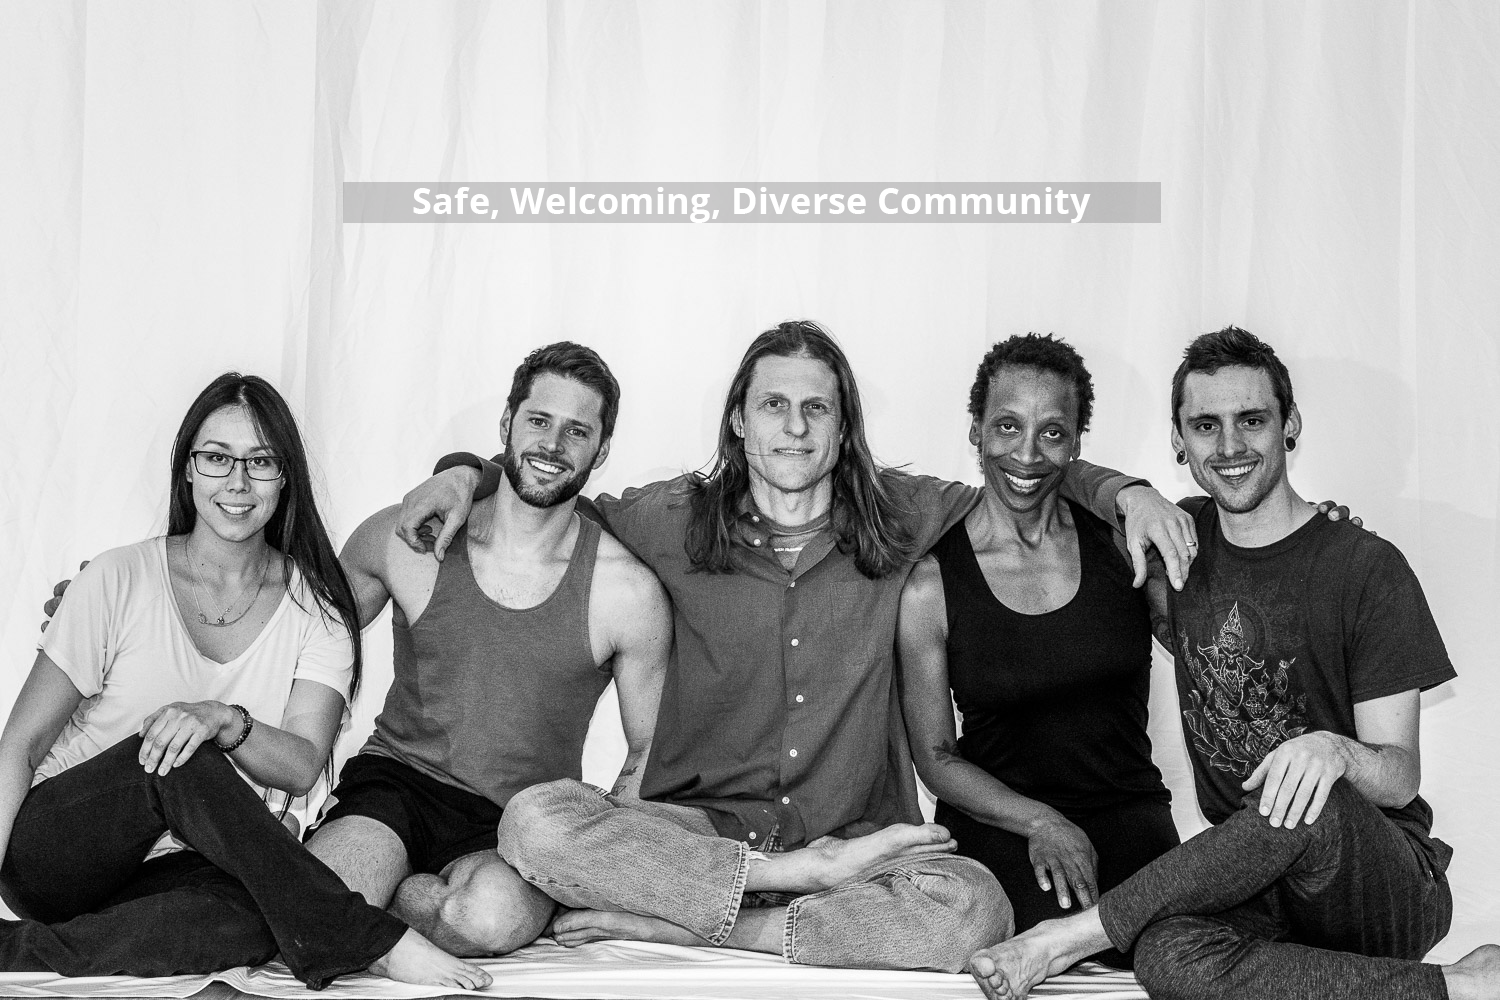 Diversity of Denver Yoga Underground students sitting in a row and smiling.